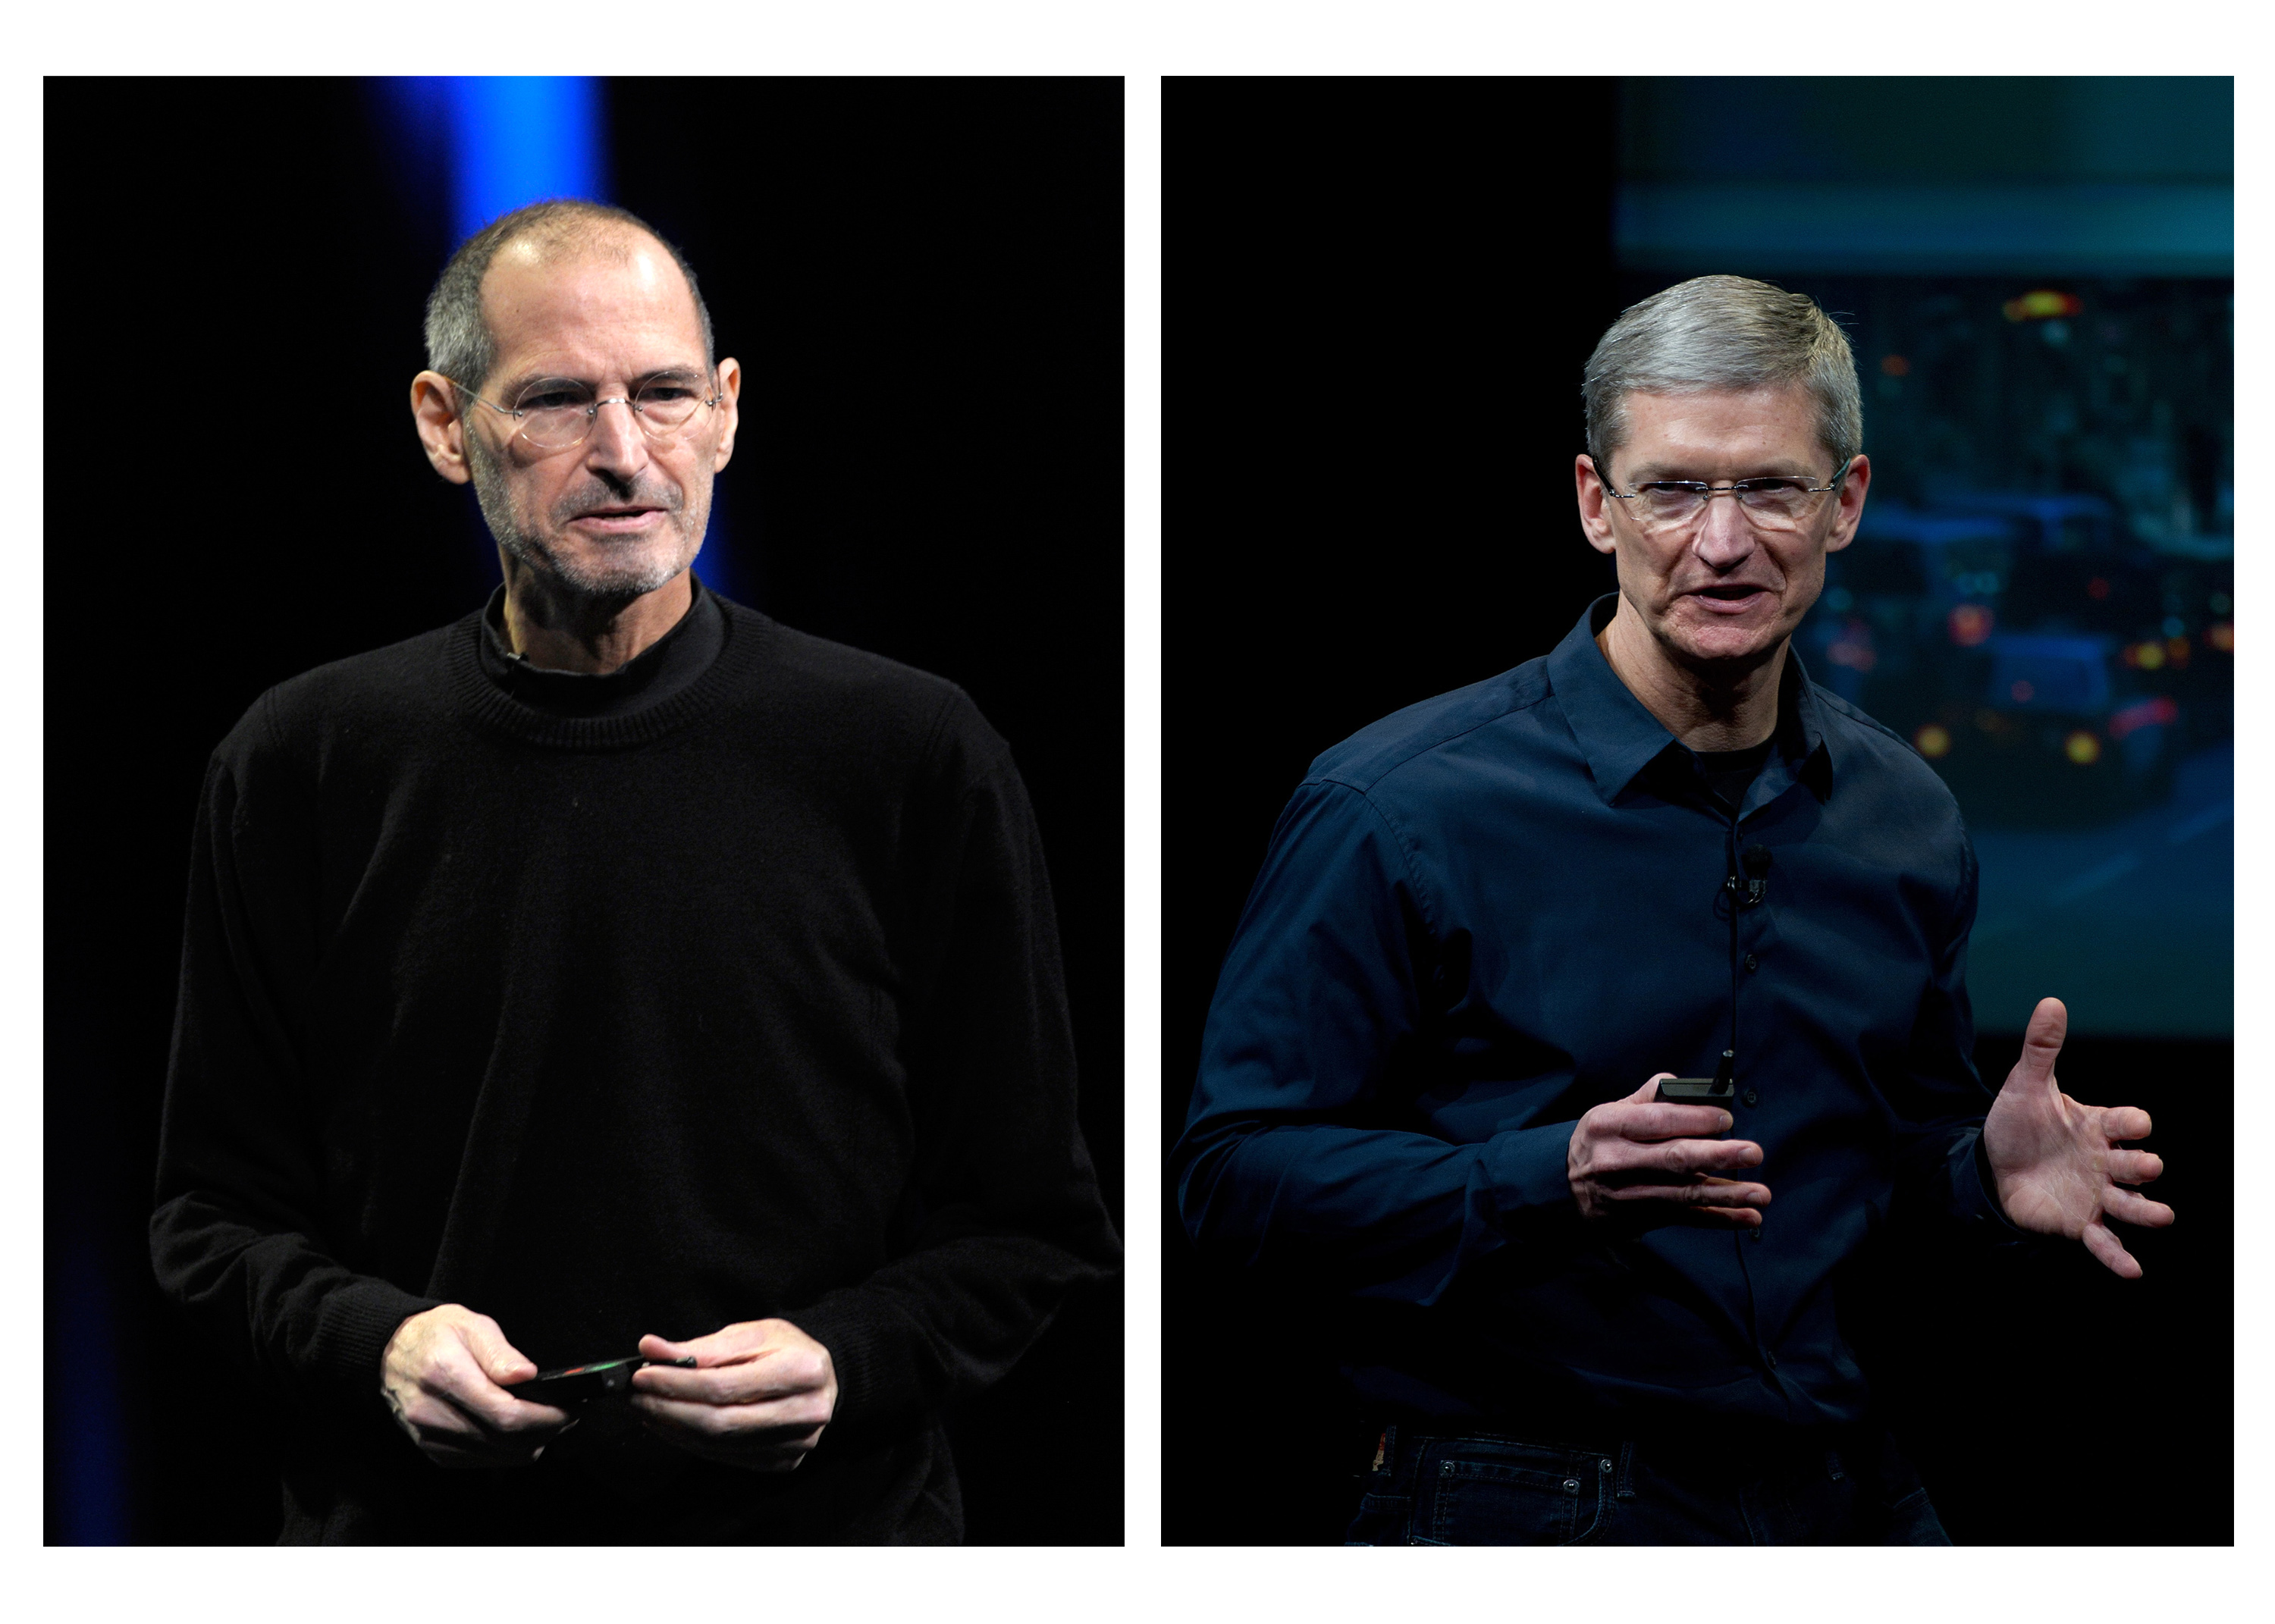 In this combination photo, Steve Jobs, former chief executive officer of Apple Inc., left, unveils the iCloud storage system at the Apple Worldwide Developers Conference 2011 in San Francisco, California, U.S., on Monday, June 6, 2011, while Tim Cook, chief executive officer of Apple Inc., right, speaks during an event at the company's headquarters in Cupertino, California, U.S., on Tuesday, Oct. 4, 2011.